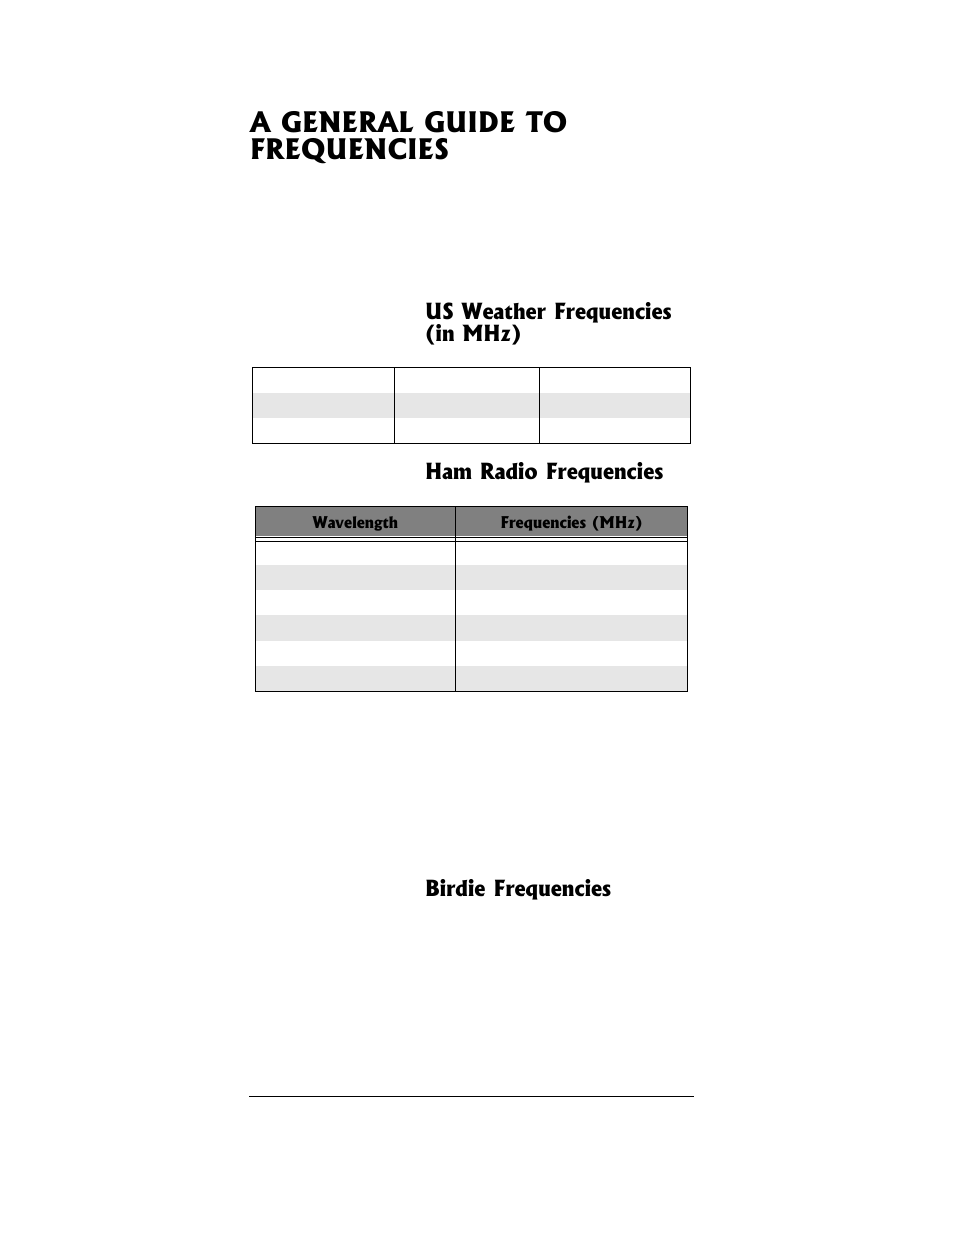 A general guide to frequencies, Birdie frequencies | Radio